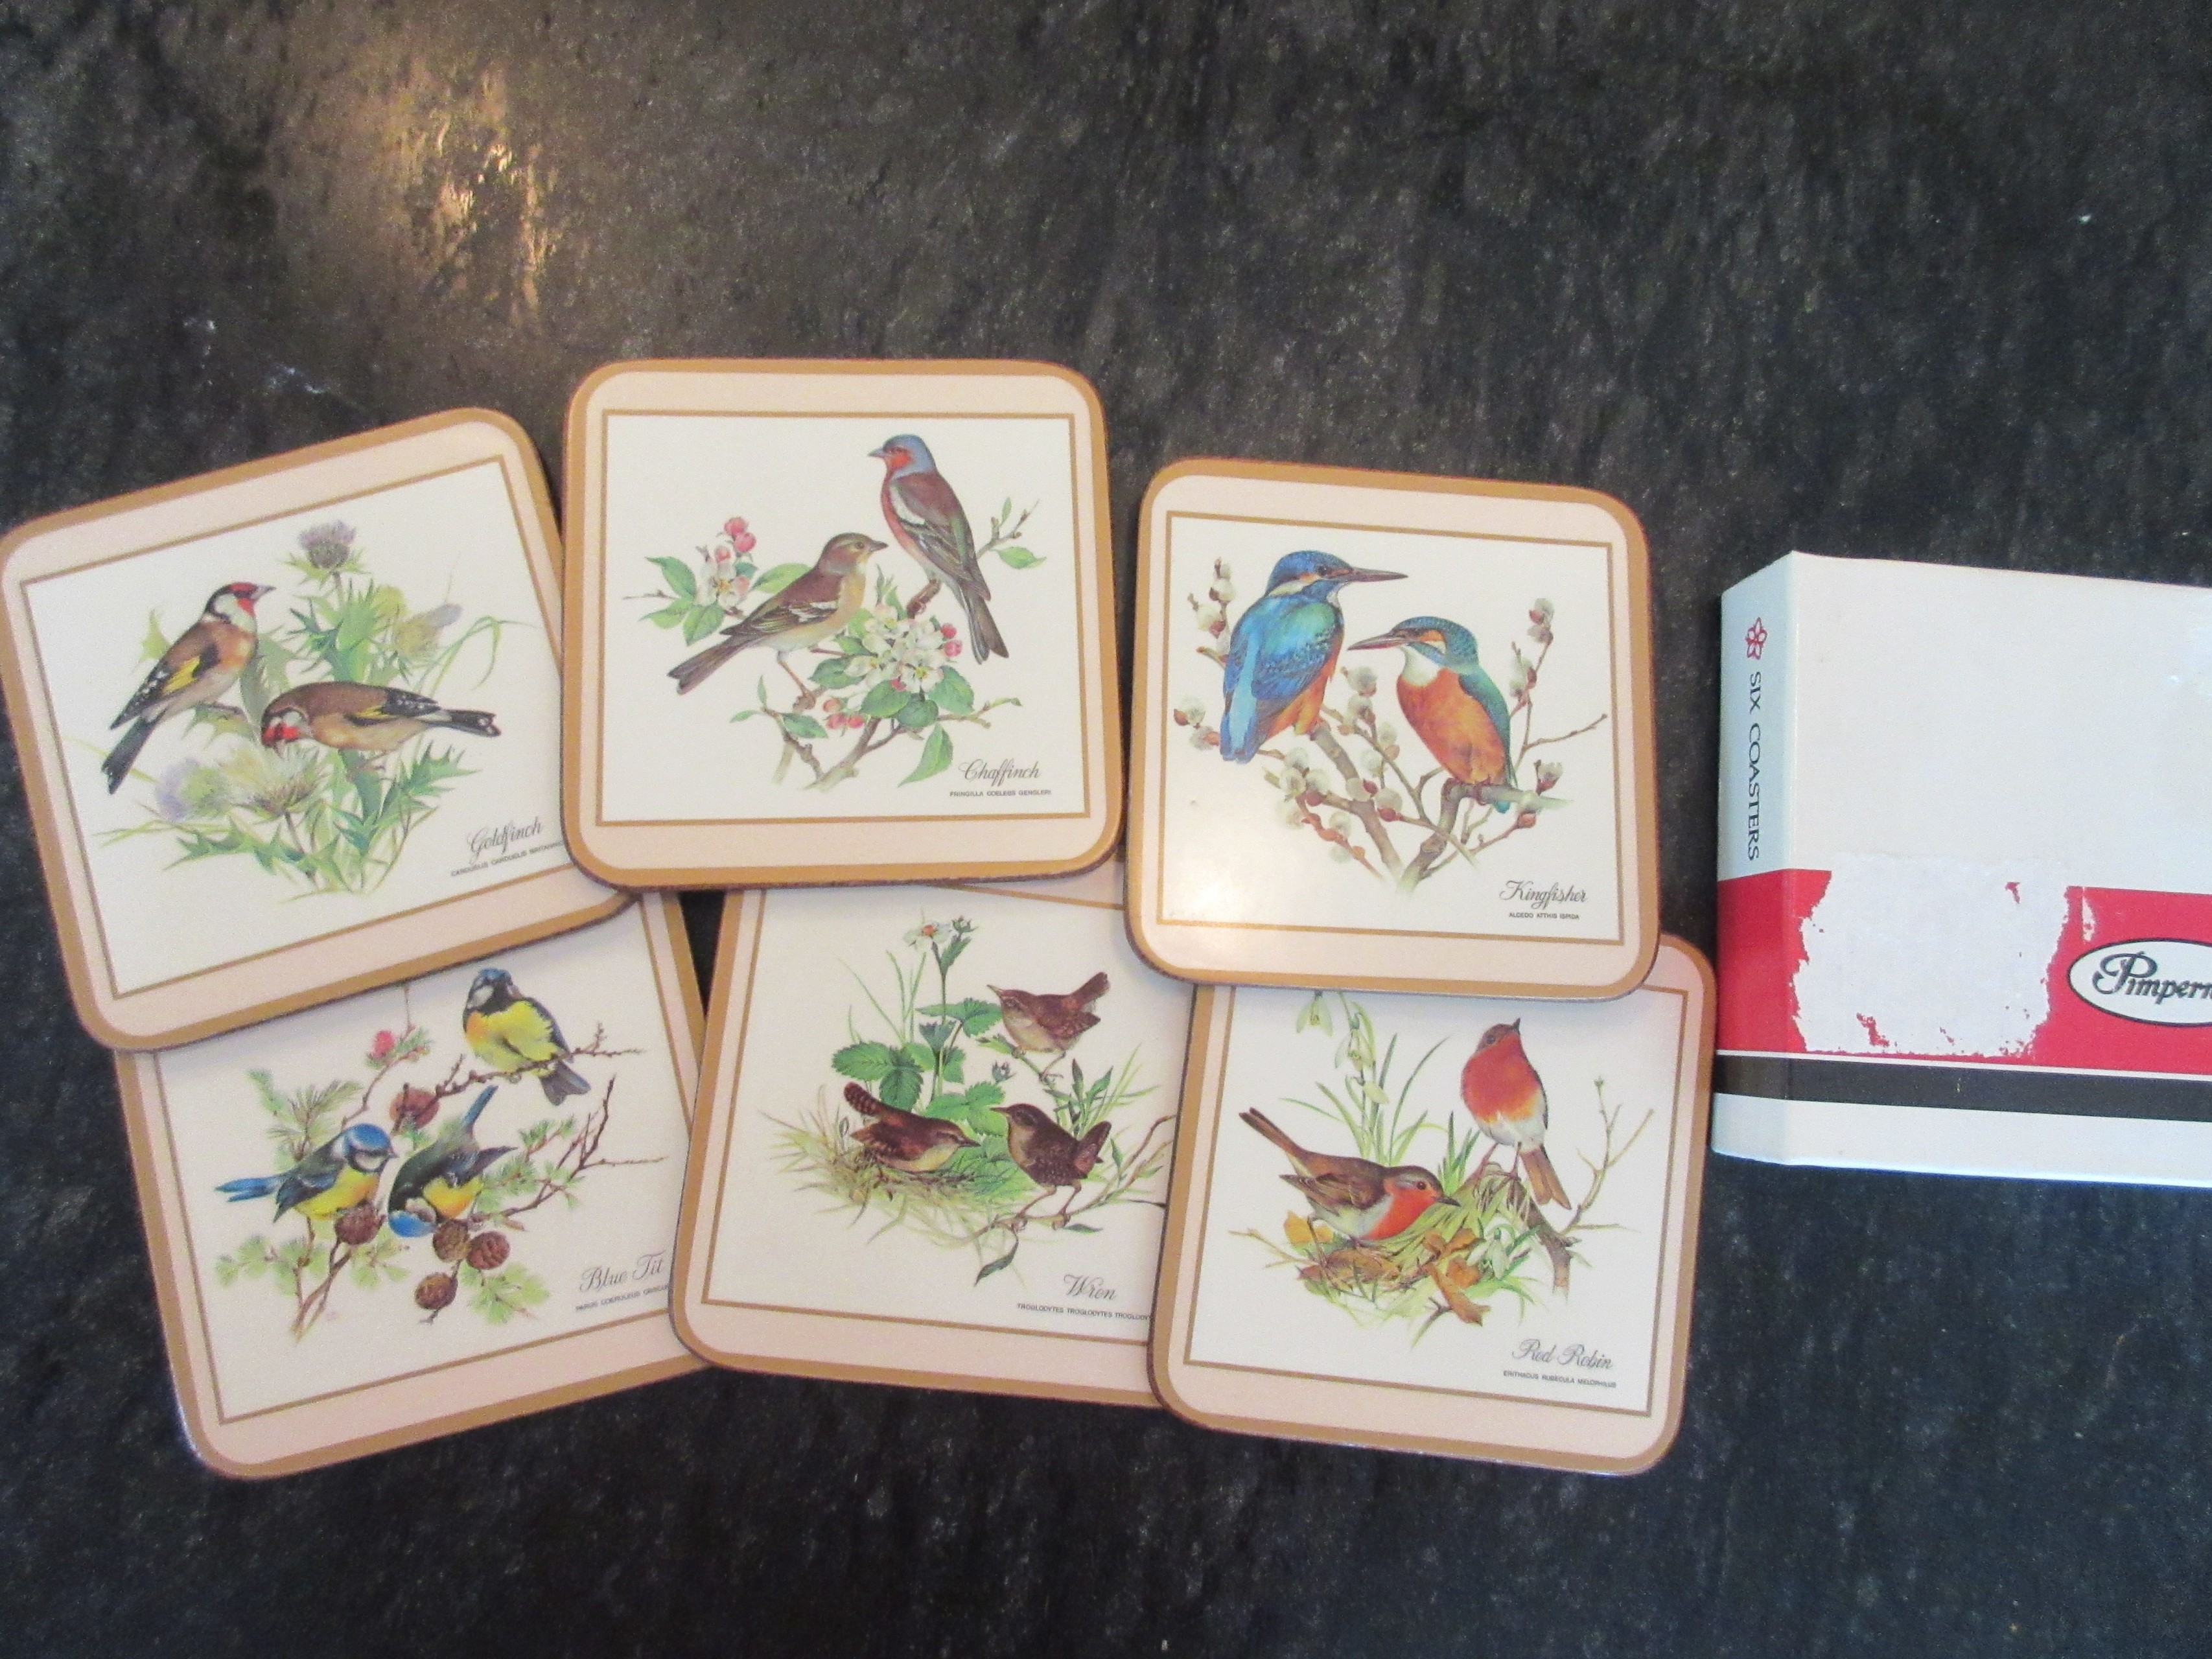 Vintage Pimpernel Coasters Birds England - Coasters made from photos